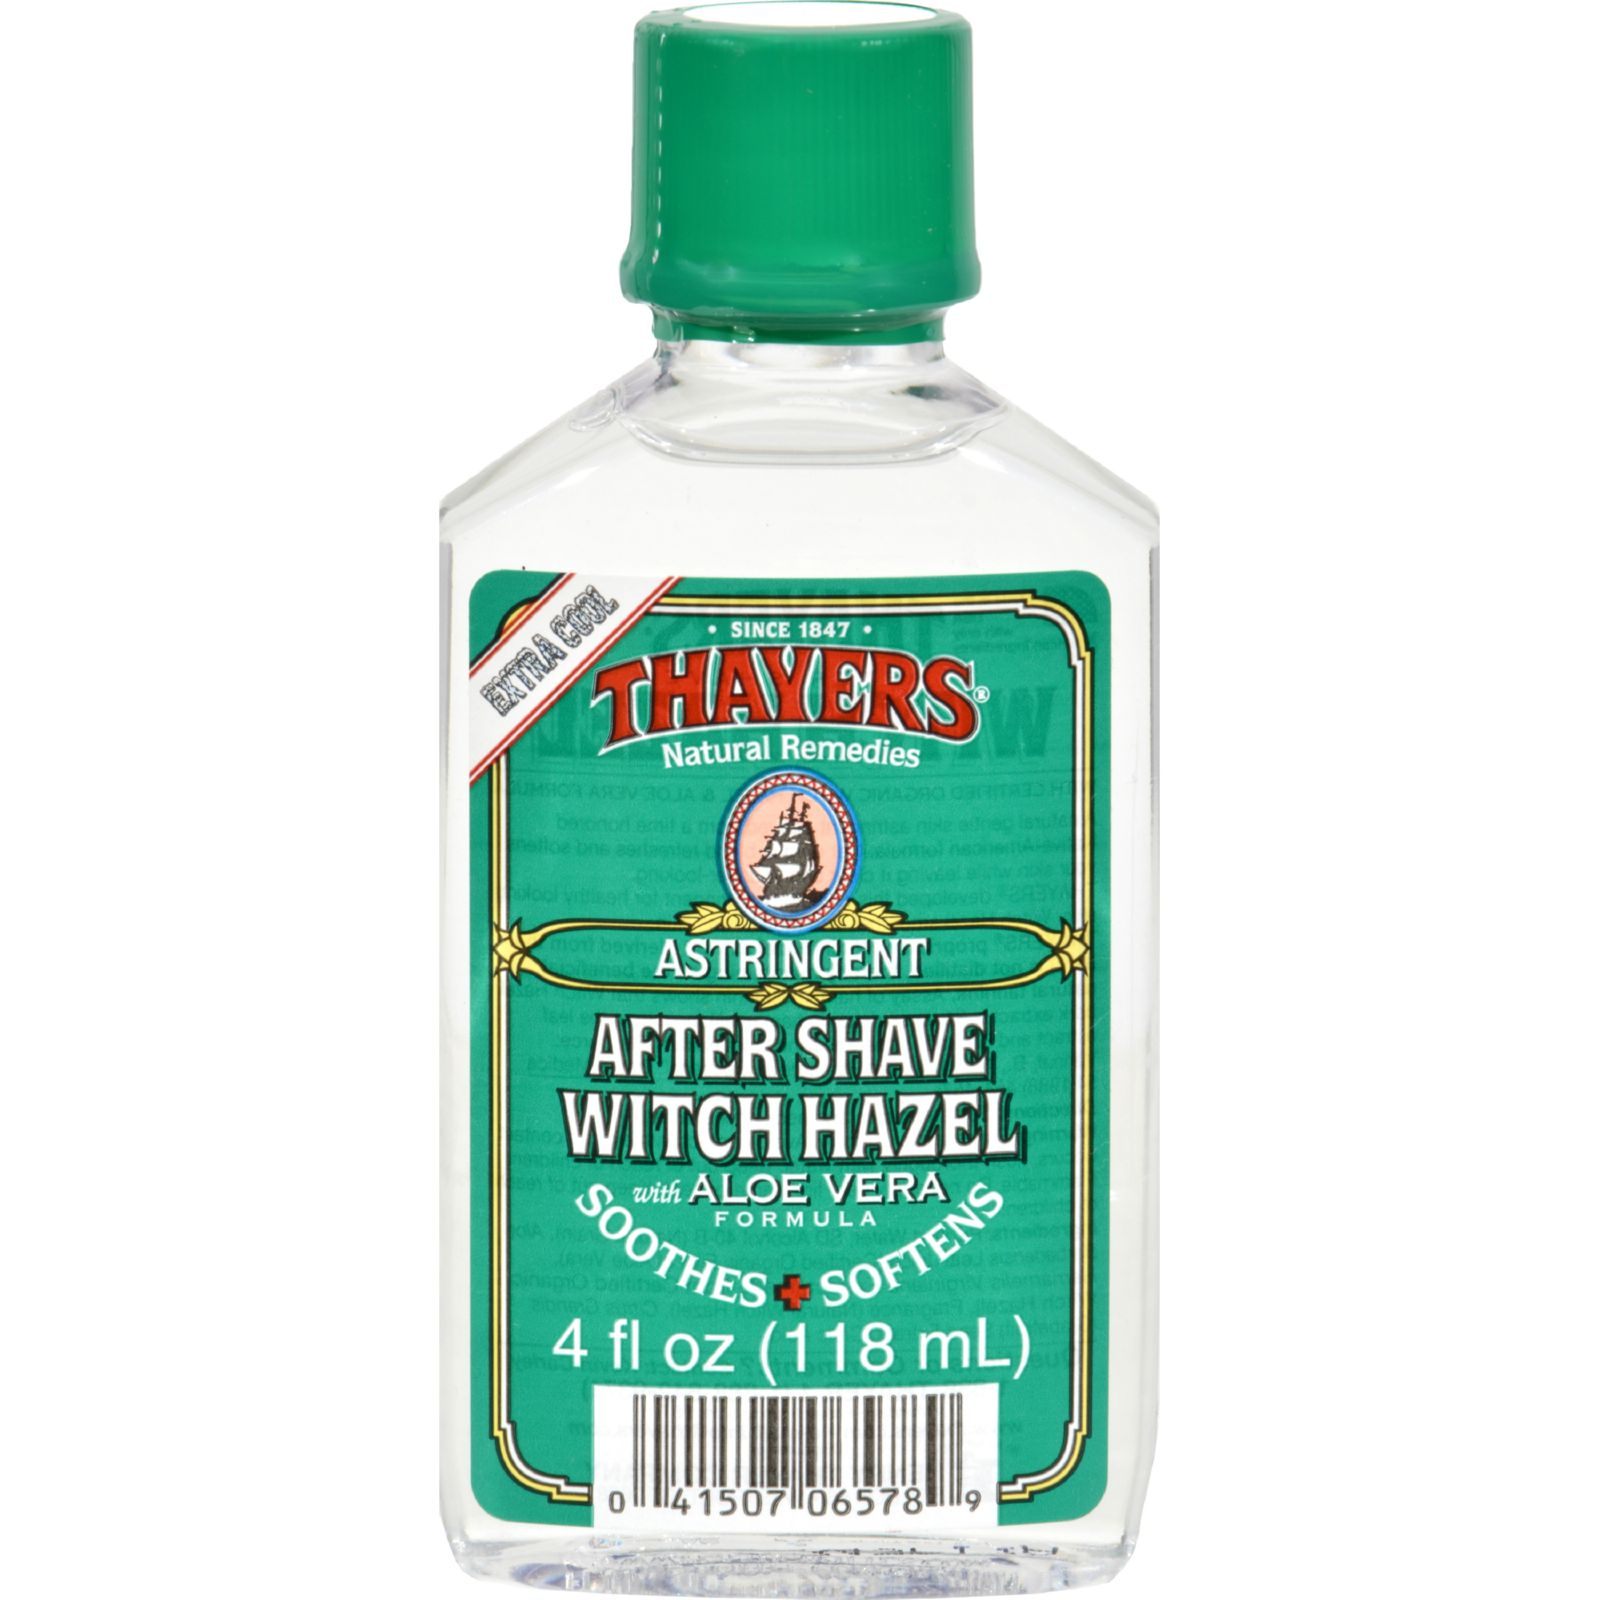 Thayers After Shave - Witch Hazel Aloe Vera - 4 oz